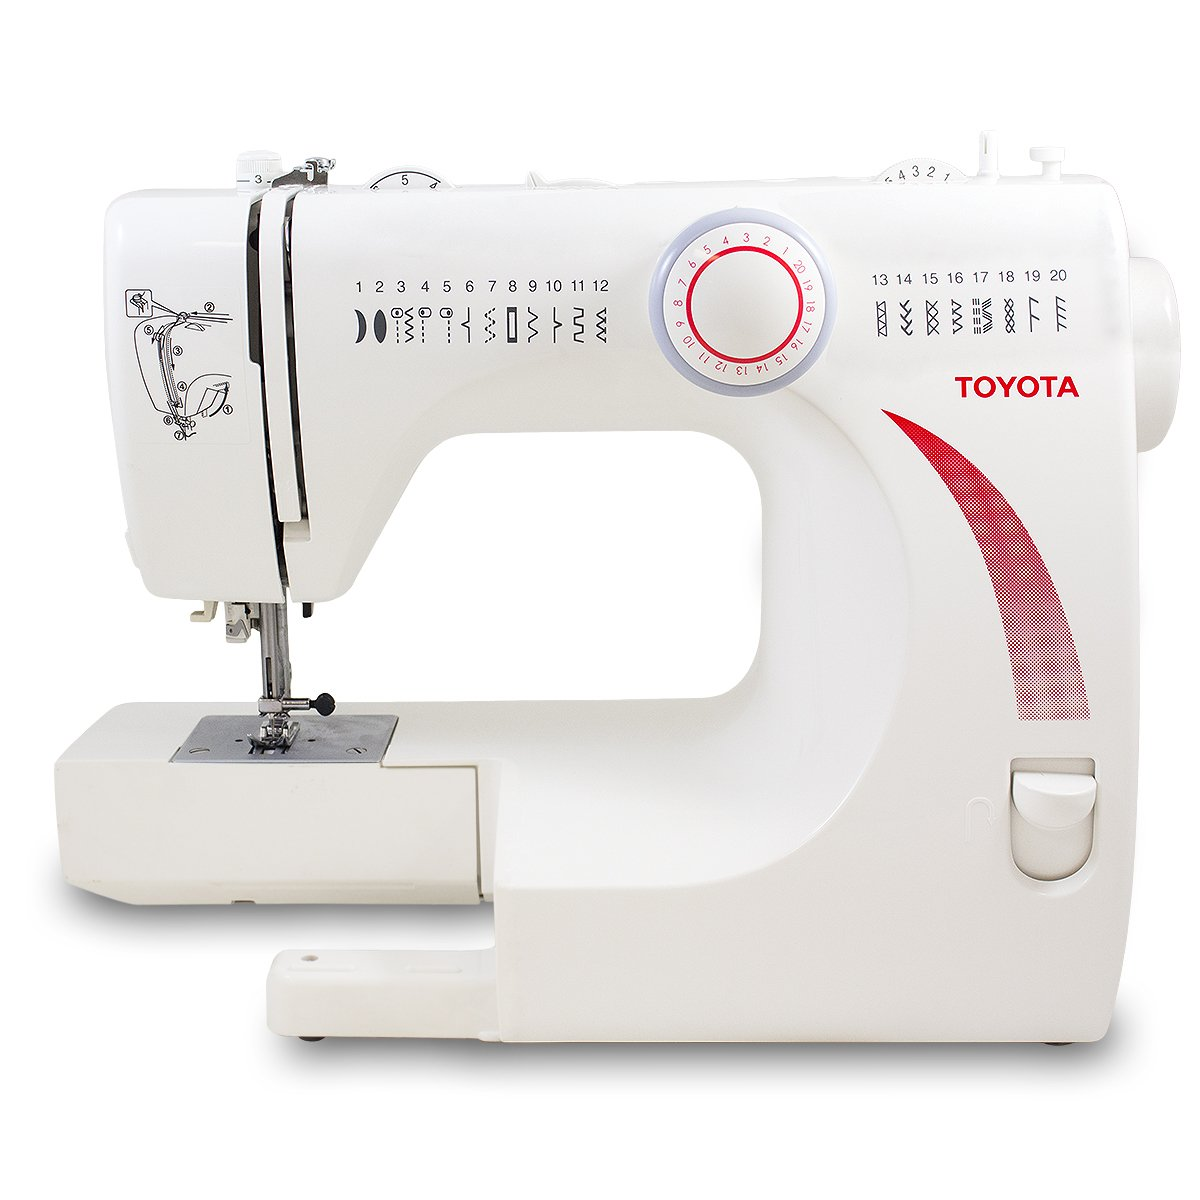 Amazon.com: TOYOTA Heavy-Duty Metal Interior STF39 (STF 39) Sewing Machine  with 20 Built-In Stitches